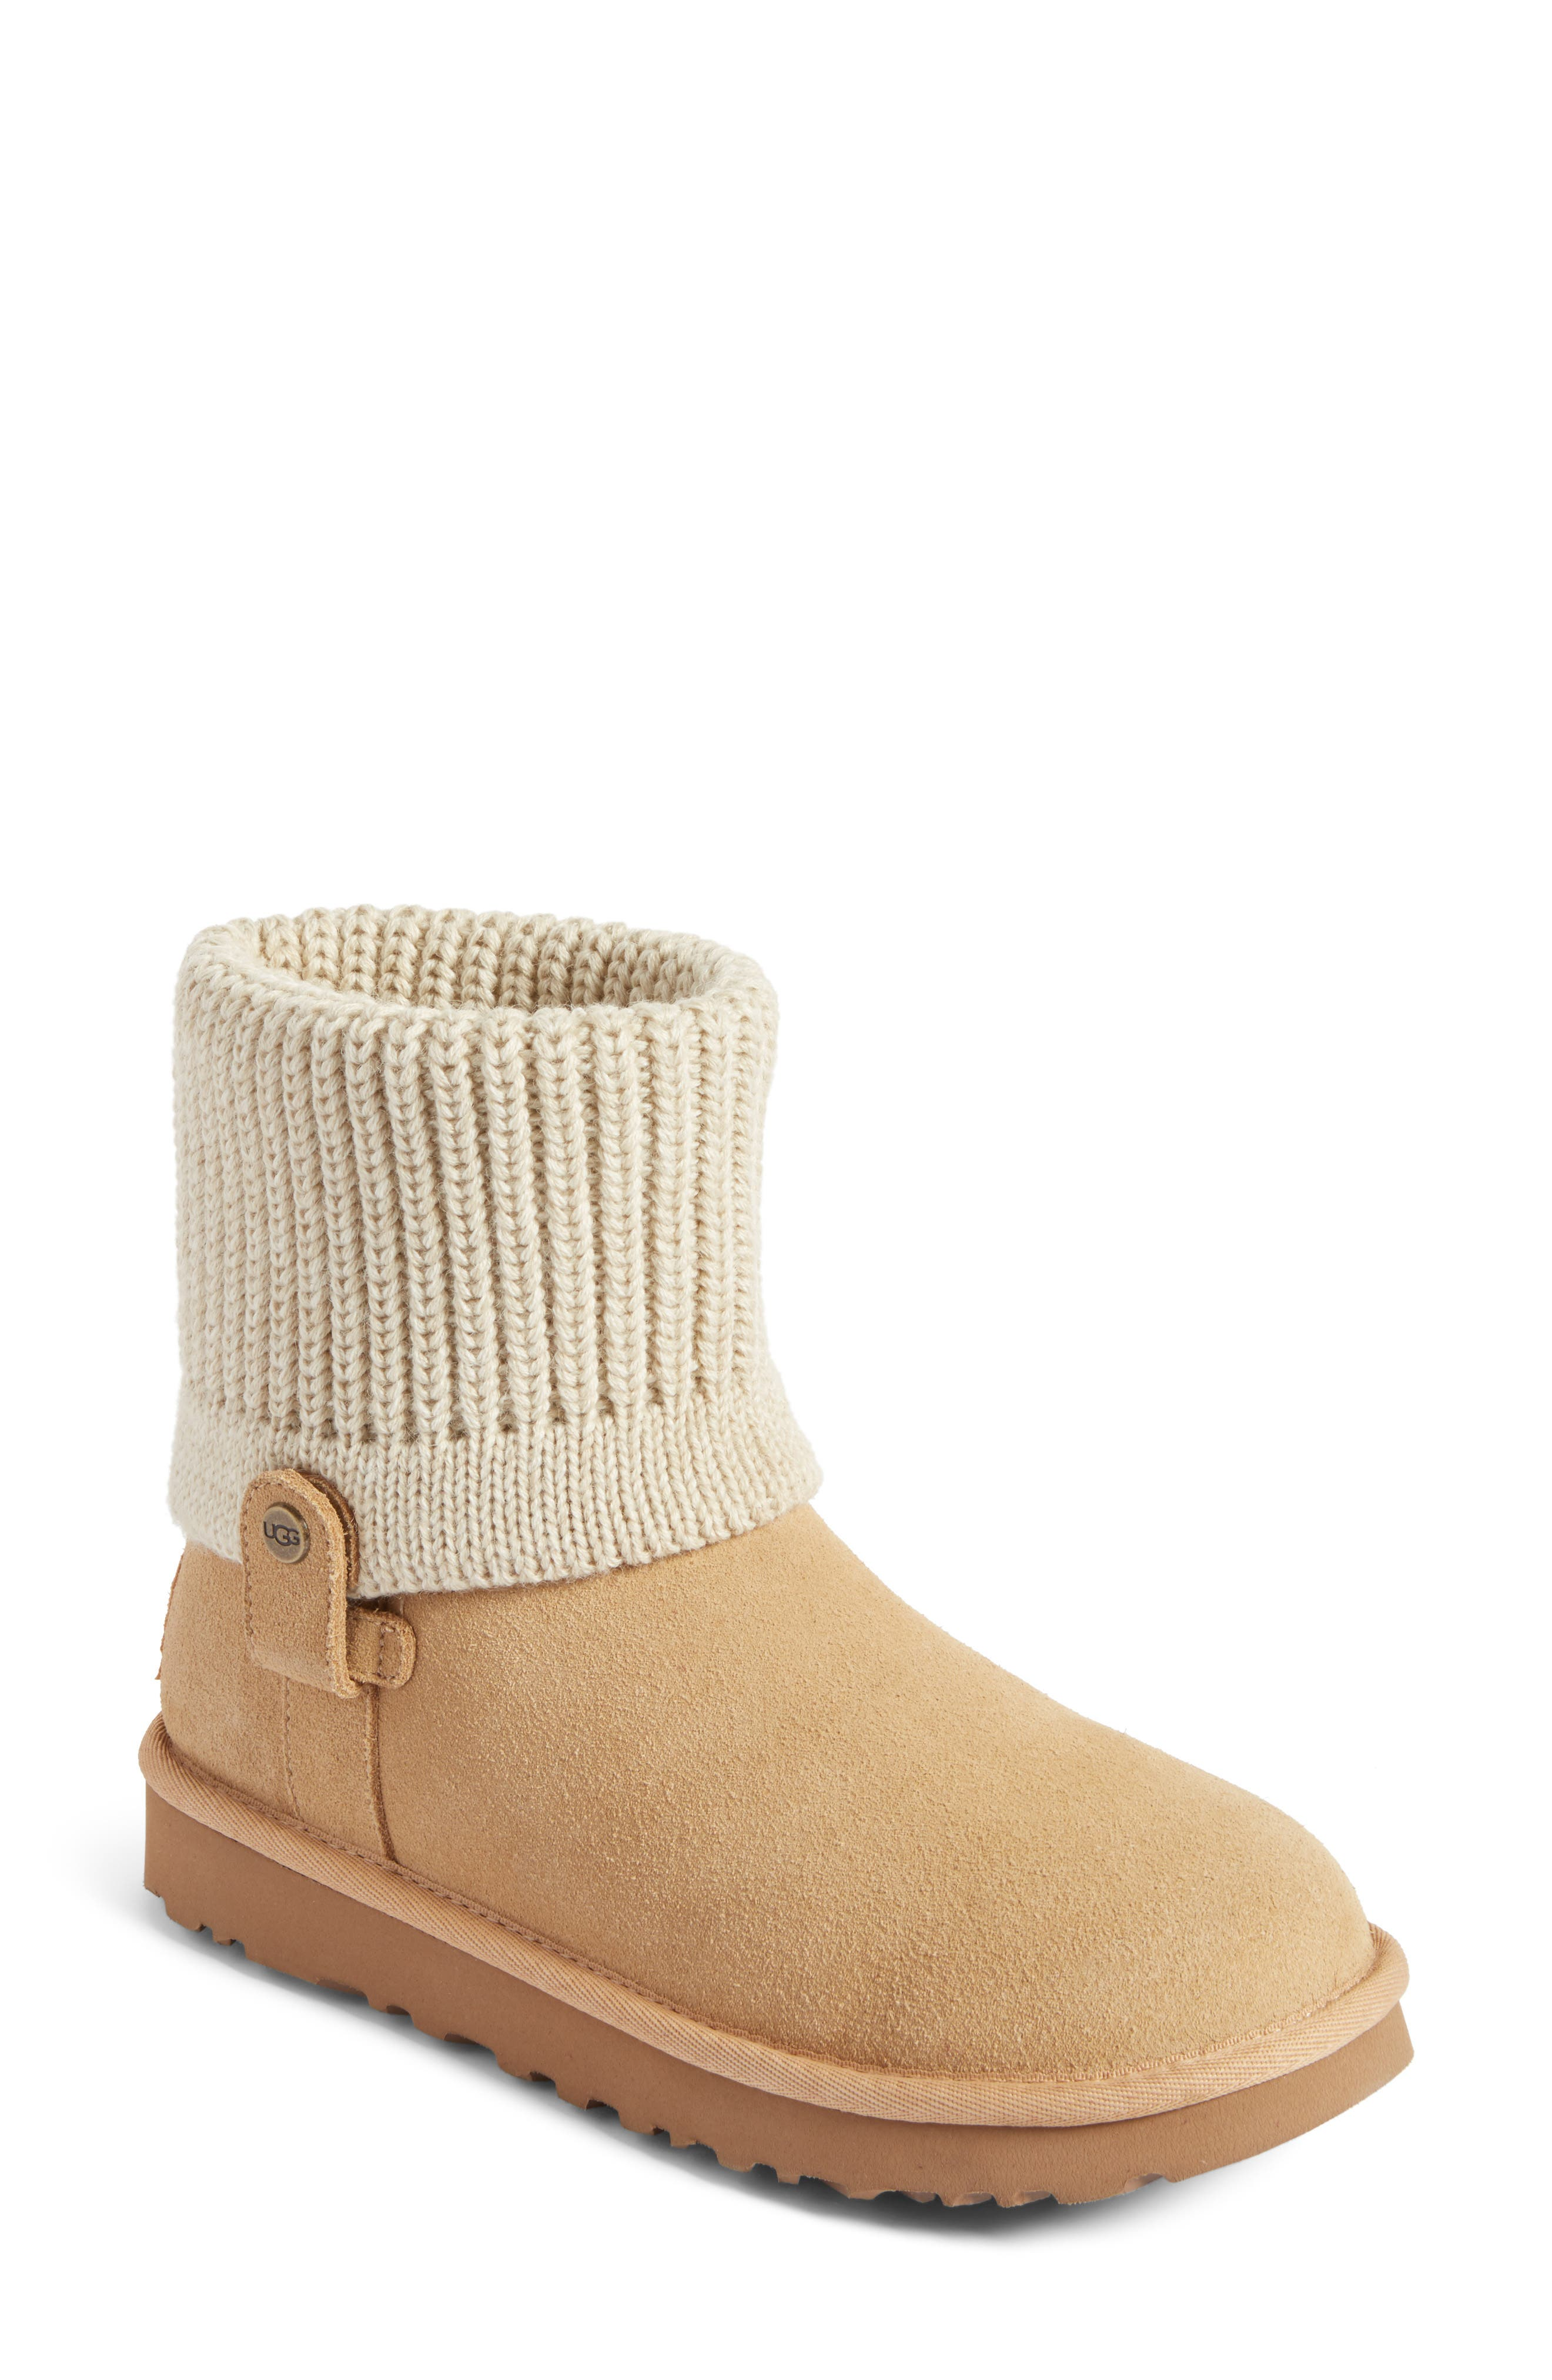 UGG On Sale Nordstrom - Free custom invoice template official ugg outlet online store